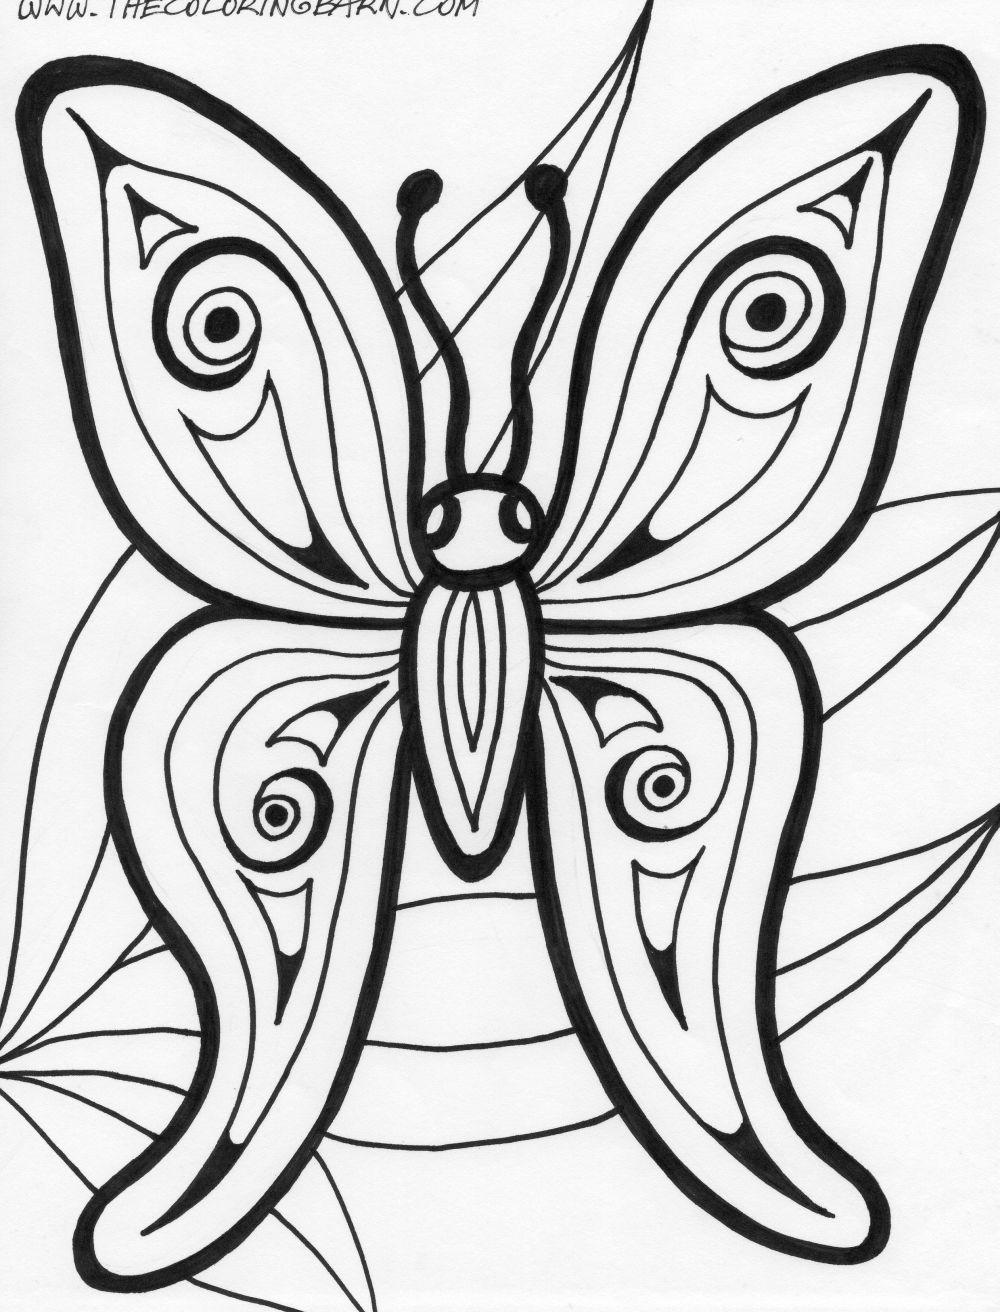 Abstract Coloring Pages Abstract Butterfly Coloring Pages Kids Coloring Pages Abstract Coloring Pages Butterfly Coloring Page Animal Coloring Pages